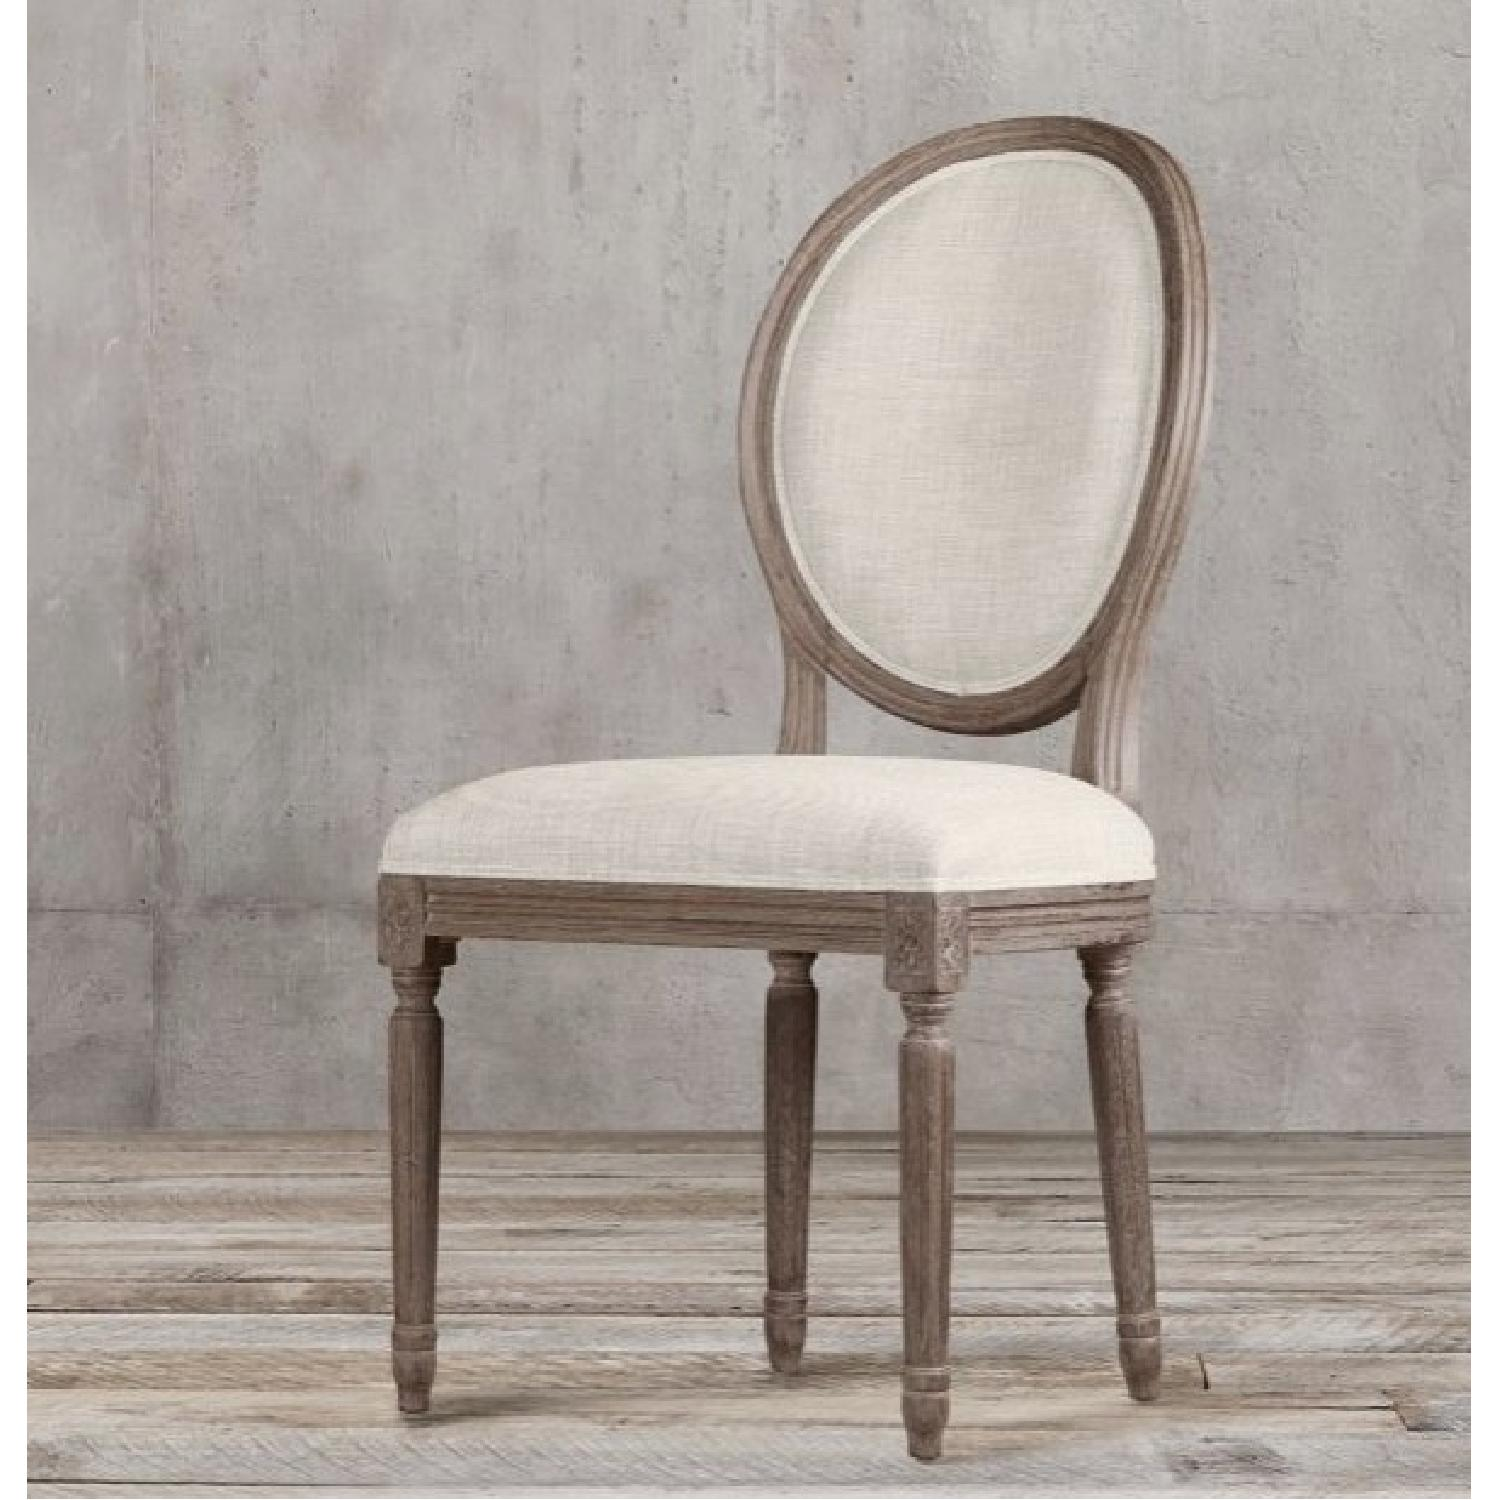 Restoration Hardware Dining Chairs Restoration Hardware Vintage French Round Fabric Back Chairs